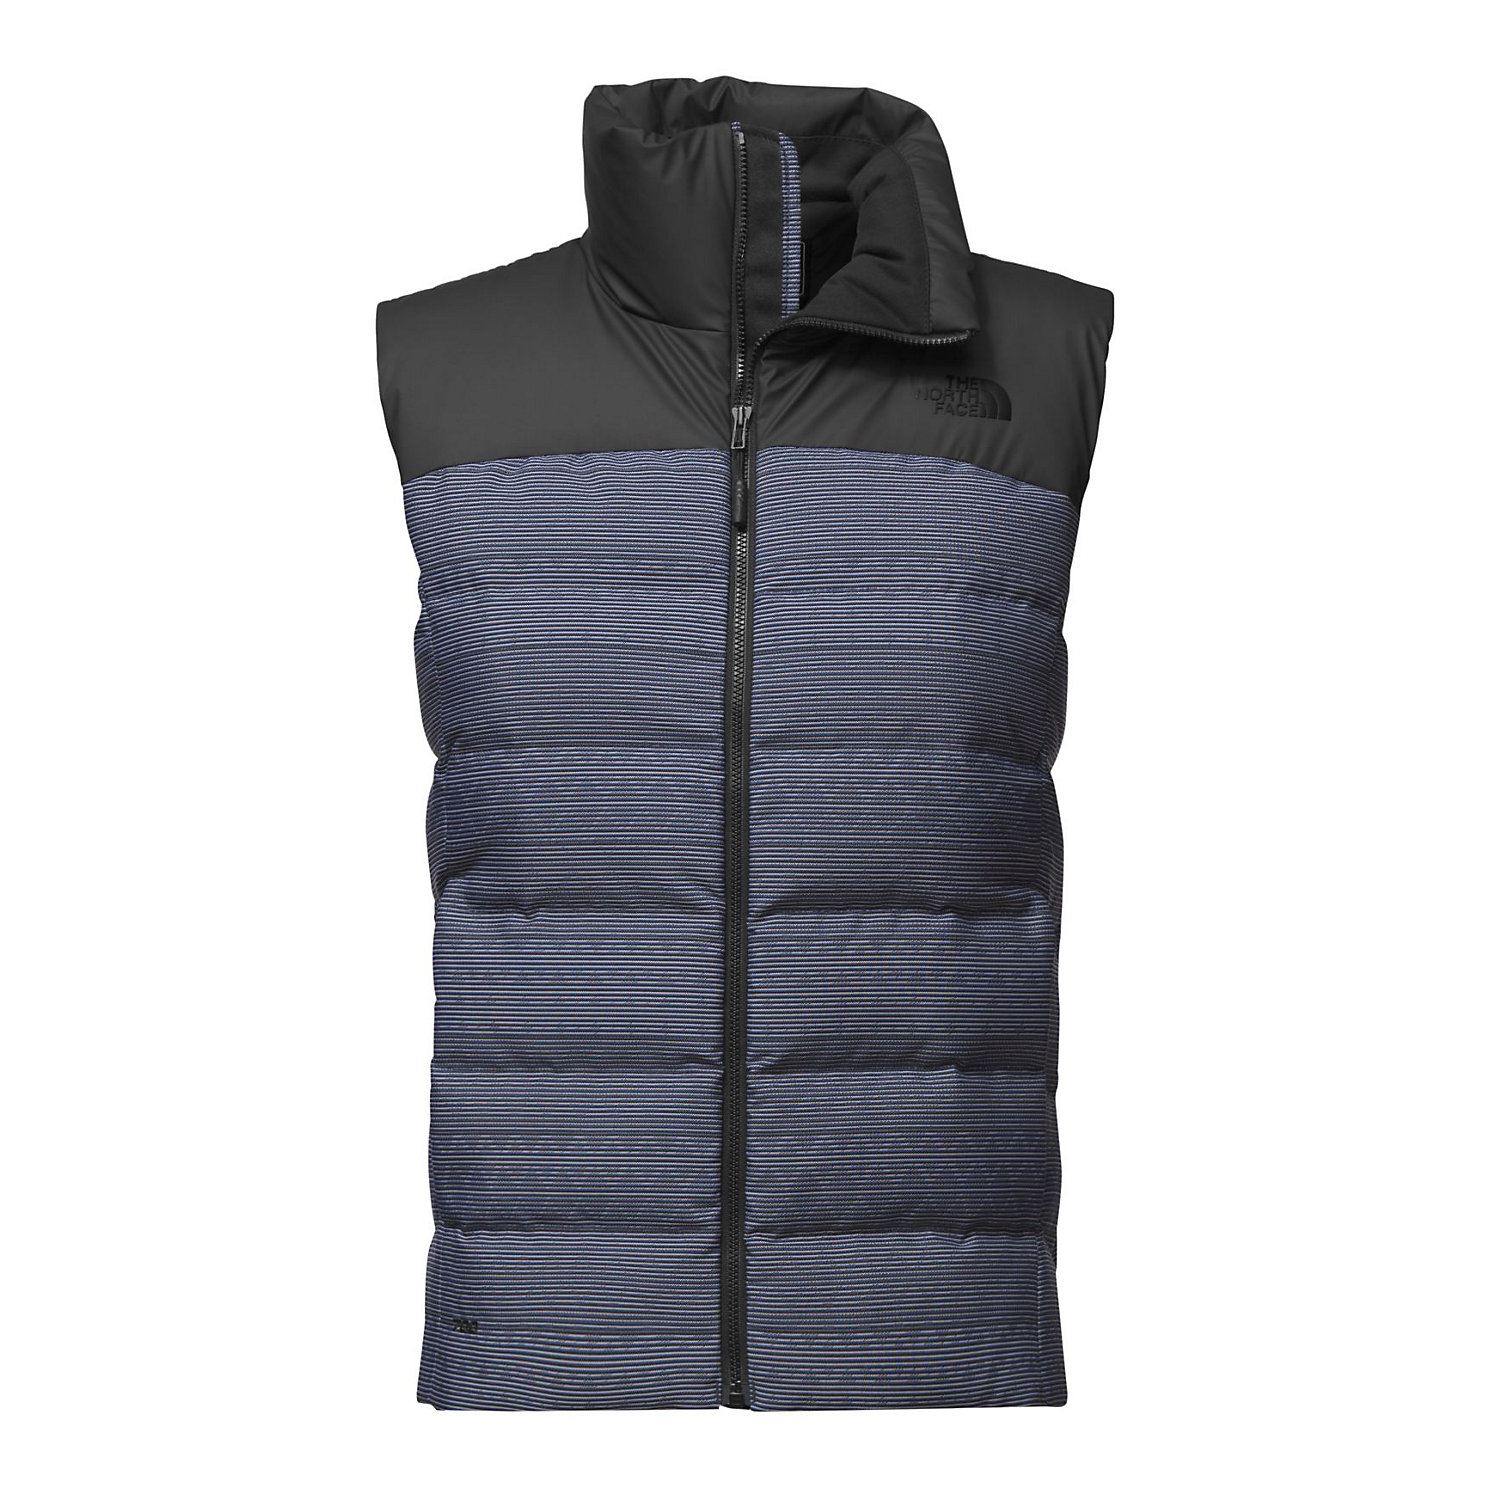 The North Face Women s Nuptse Vest - Moosejaw daa49fe25